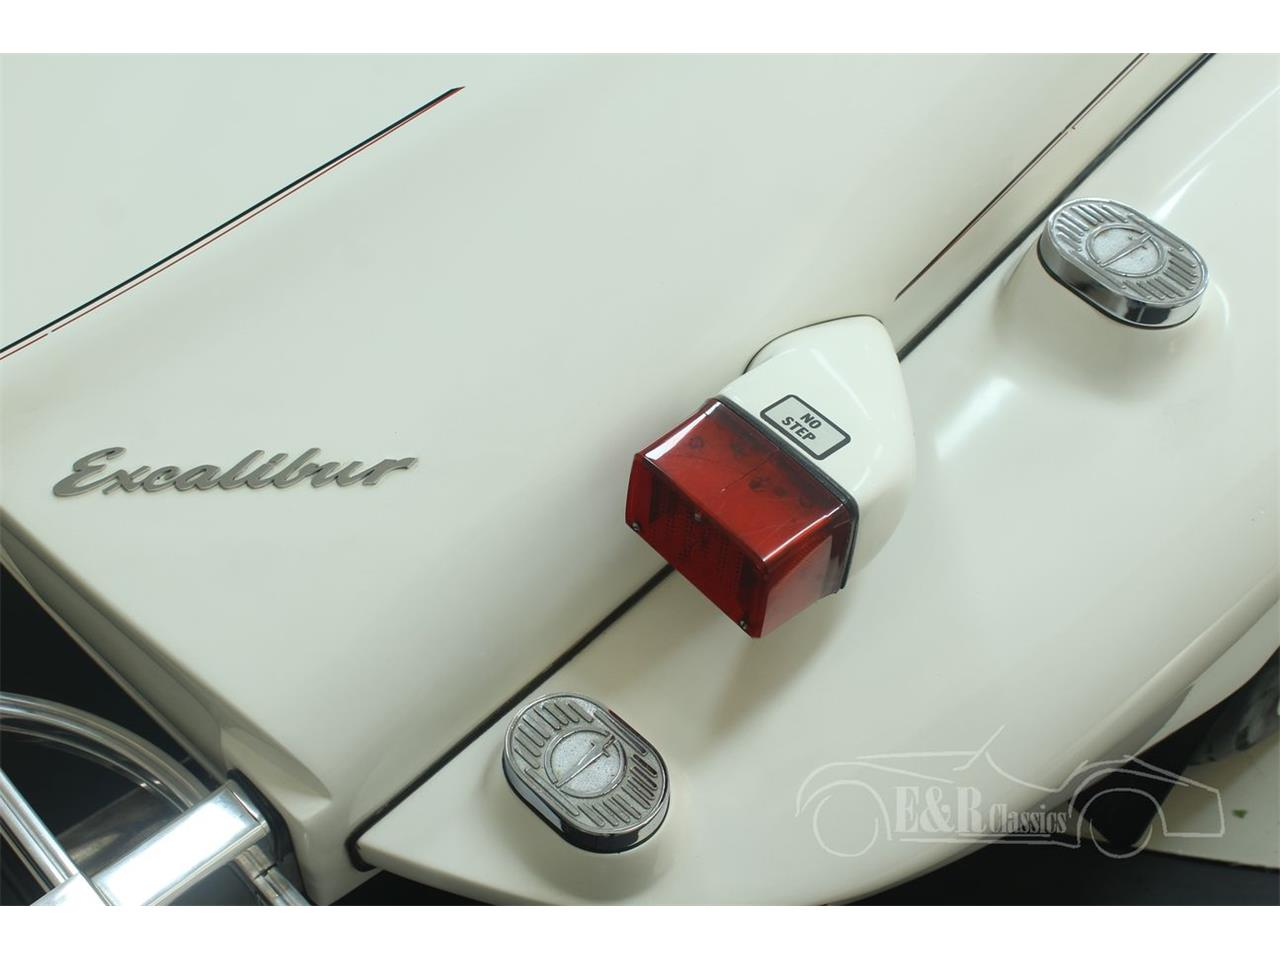 Large Picture of '82 Excalibur Series IV Phaeton located in noord brabant Offered by E & R Classics - Q3GF